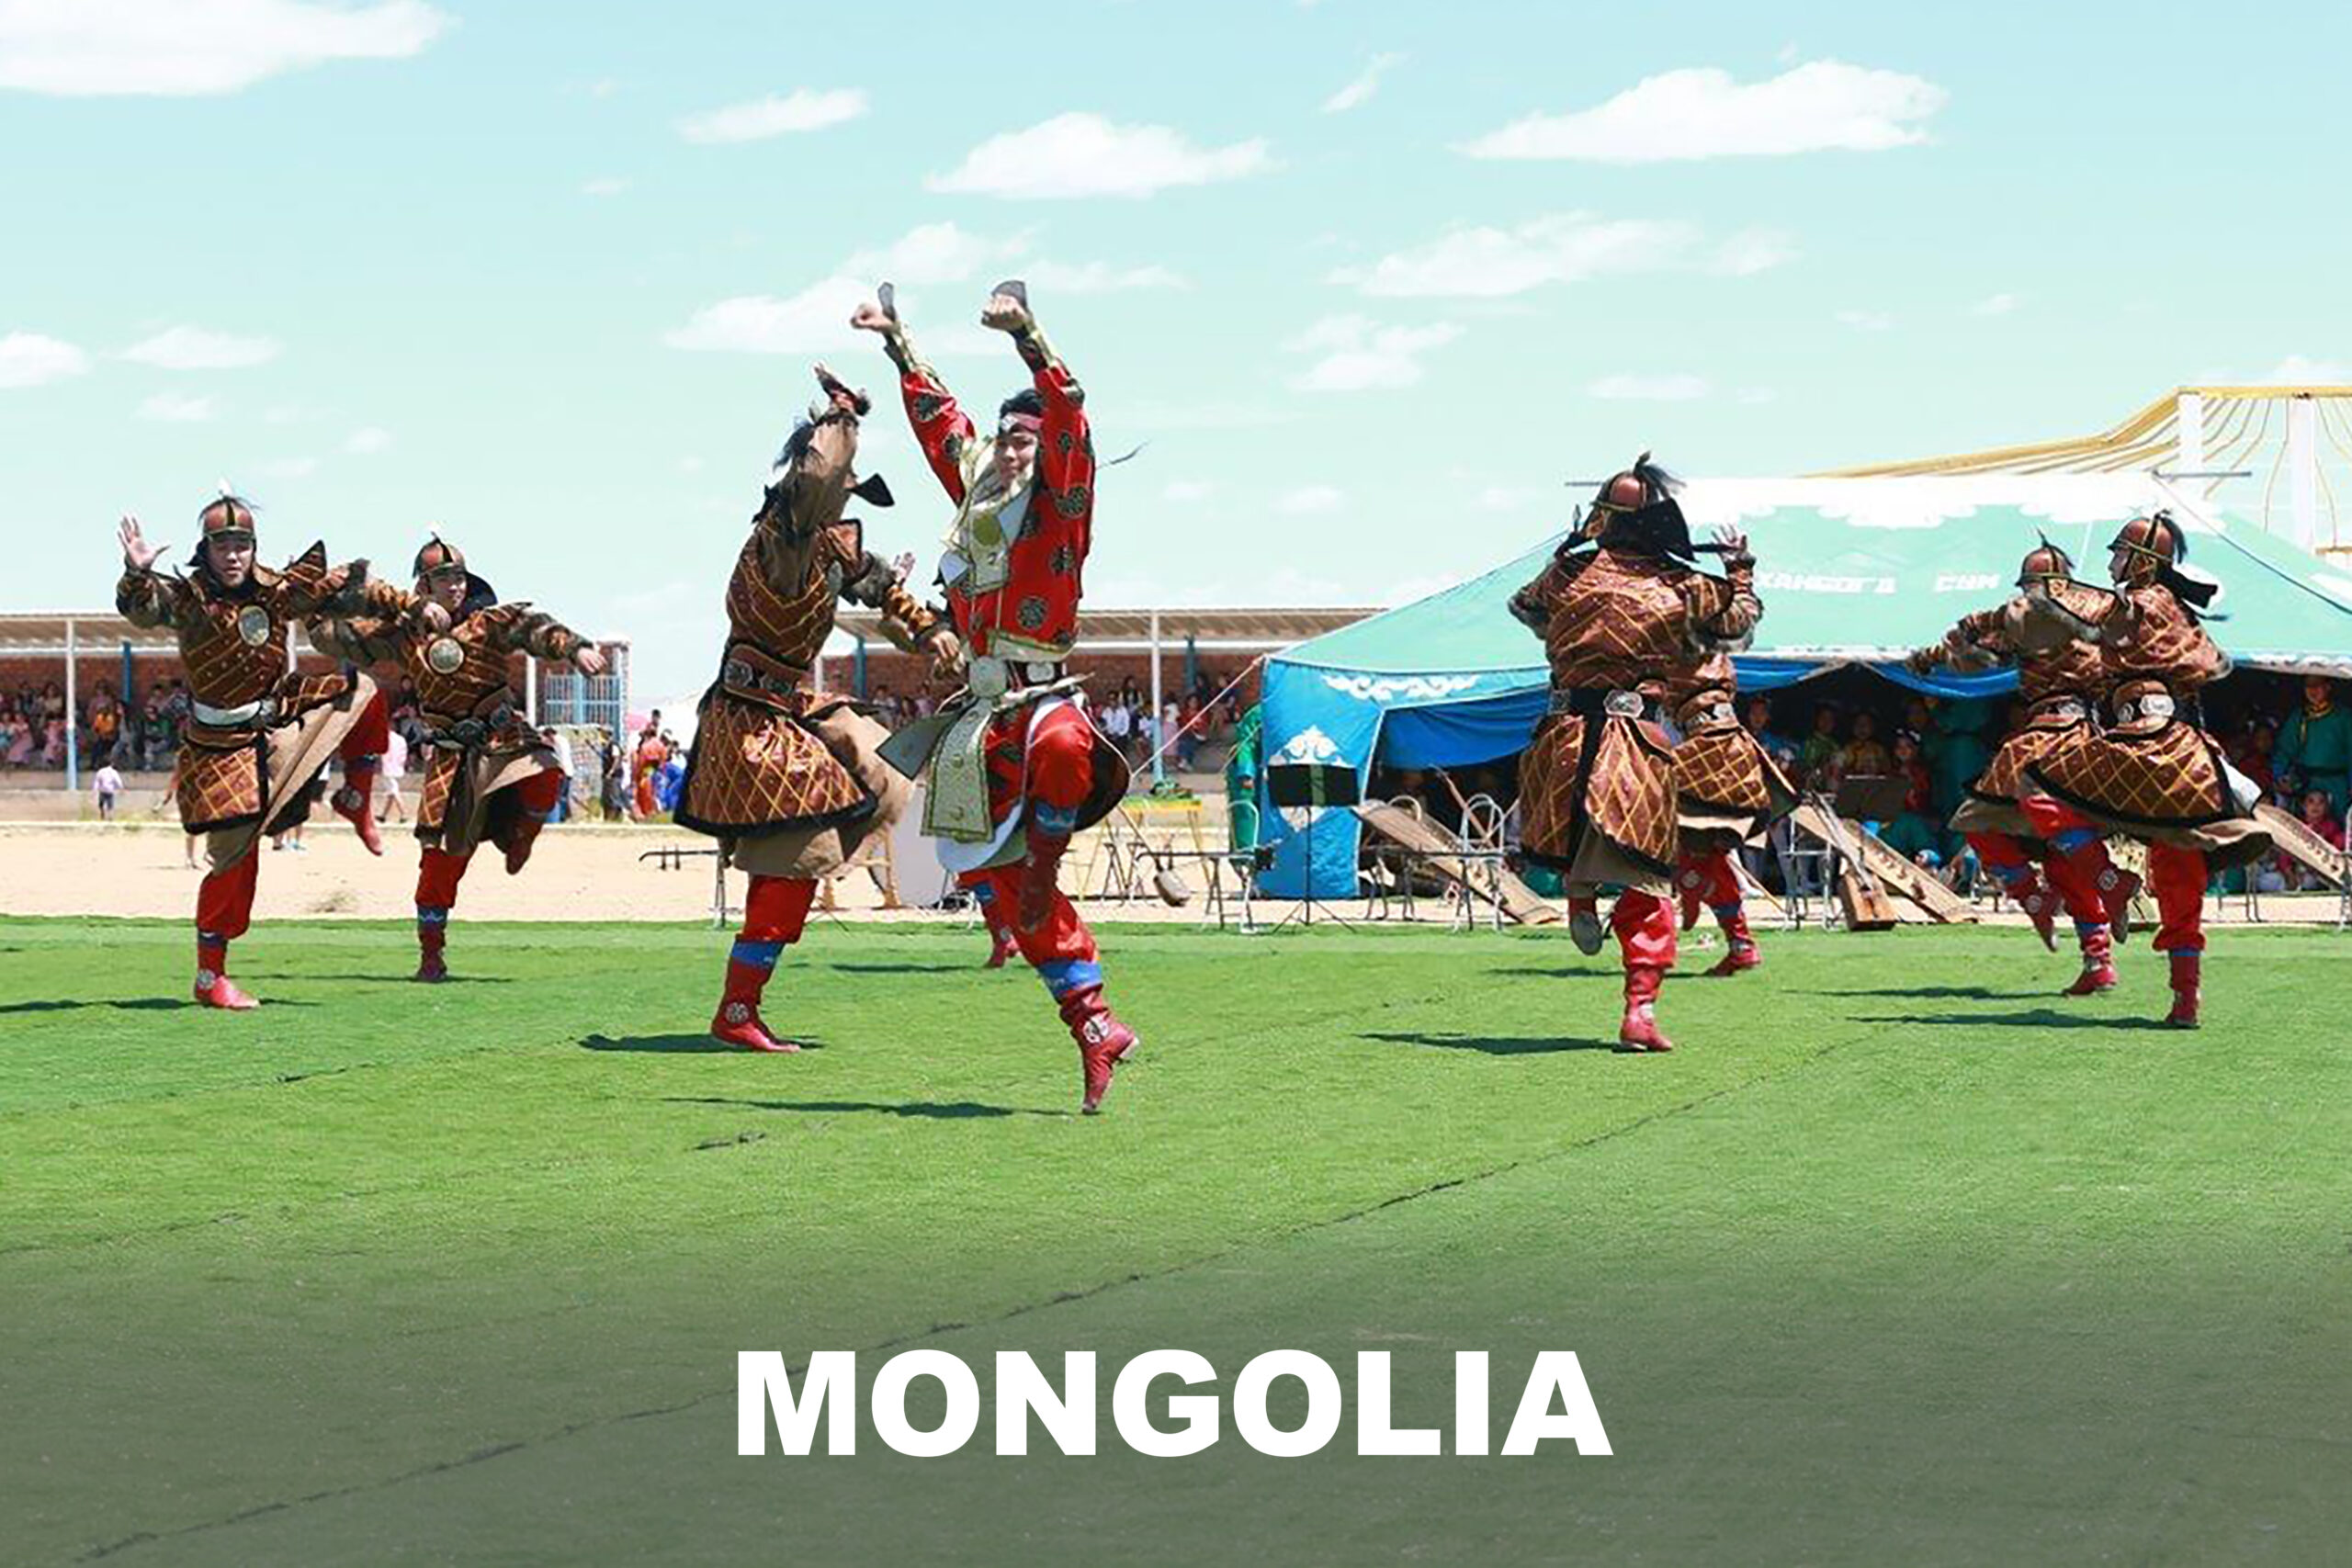 A group of Mongolia people are dancing